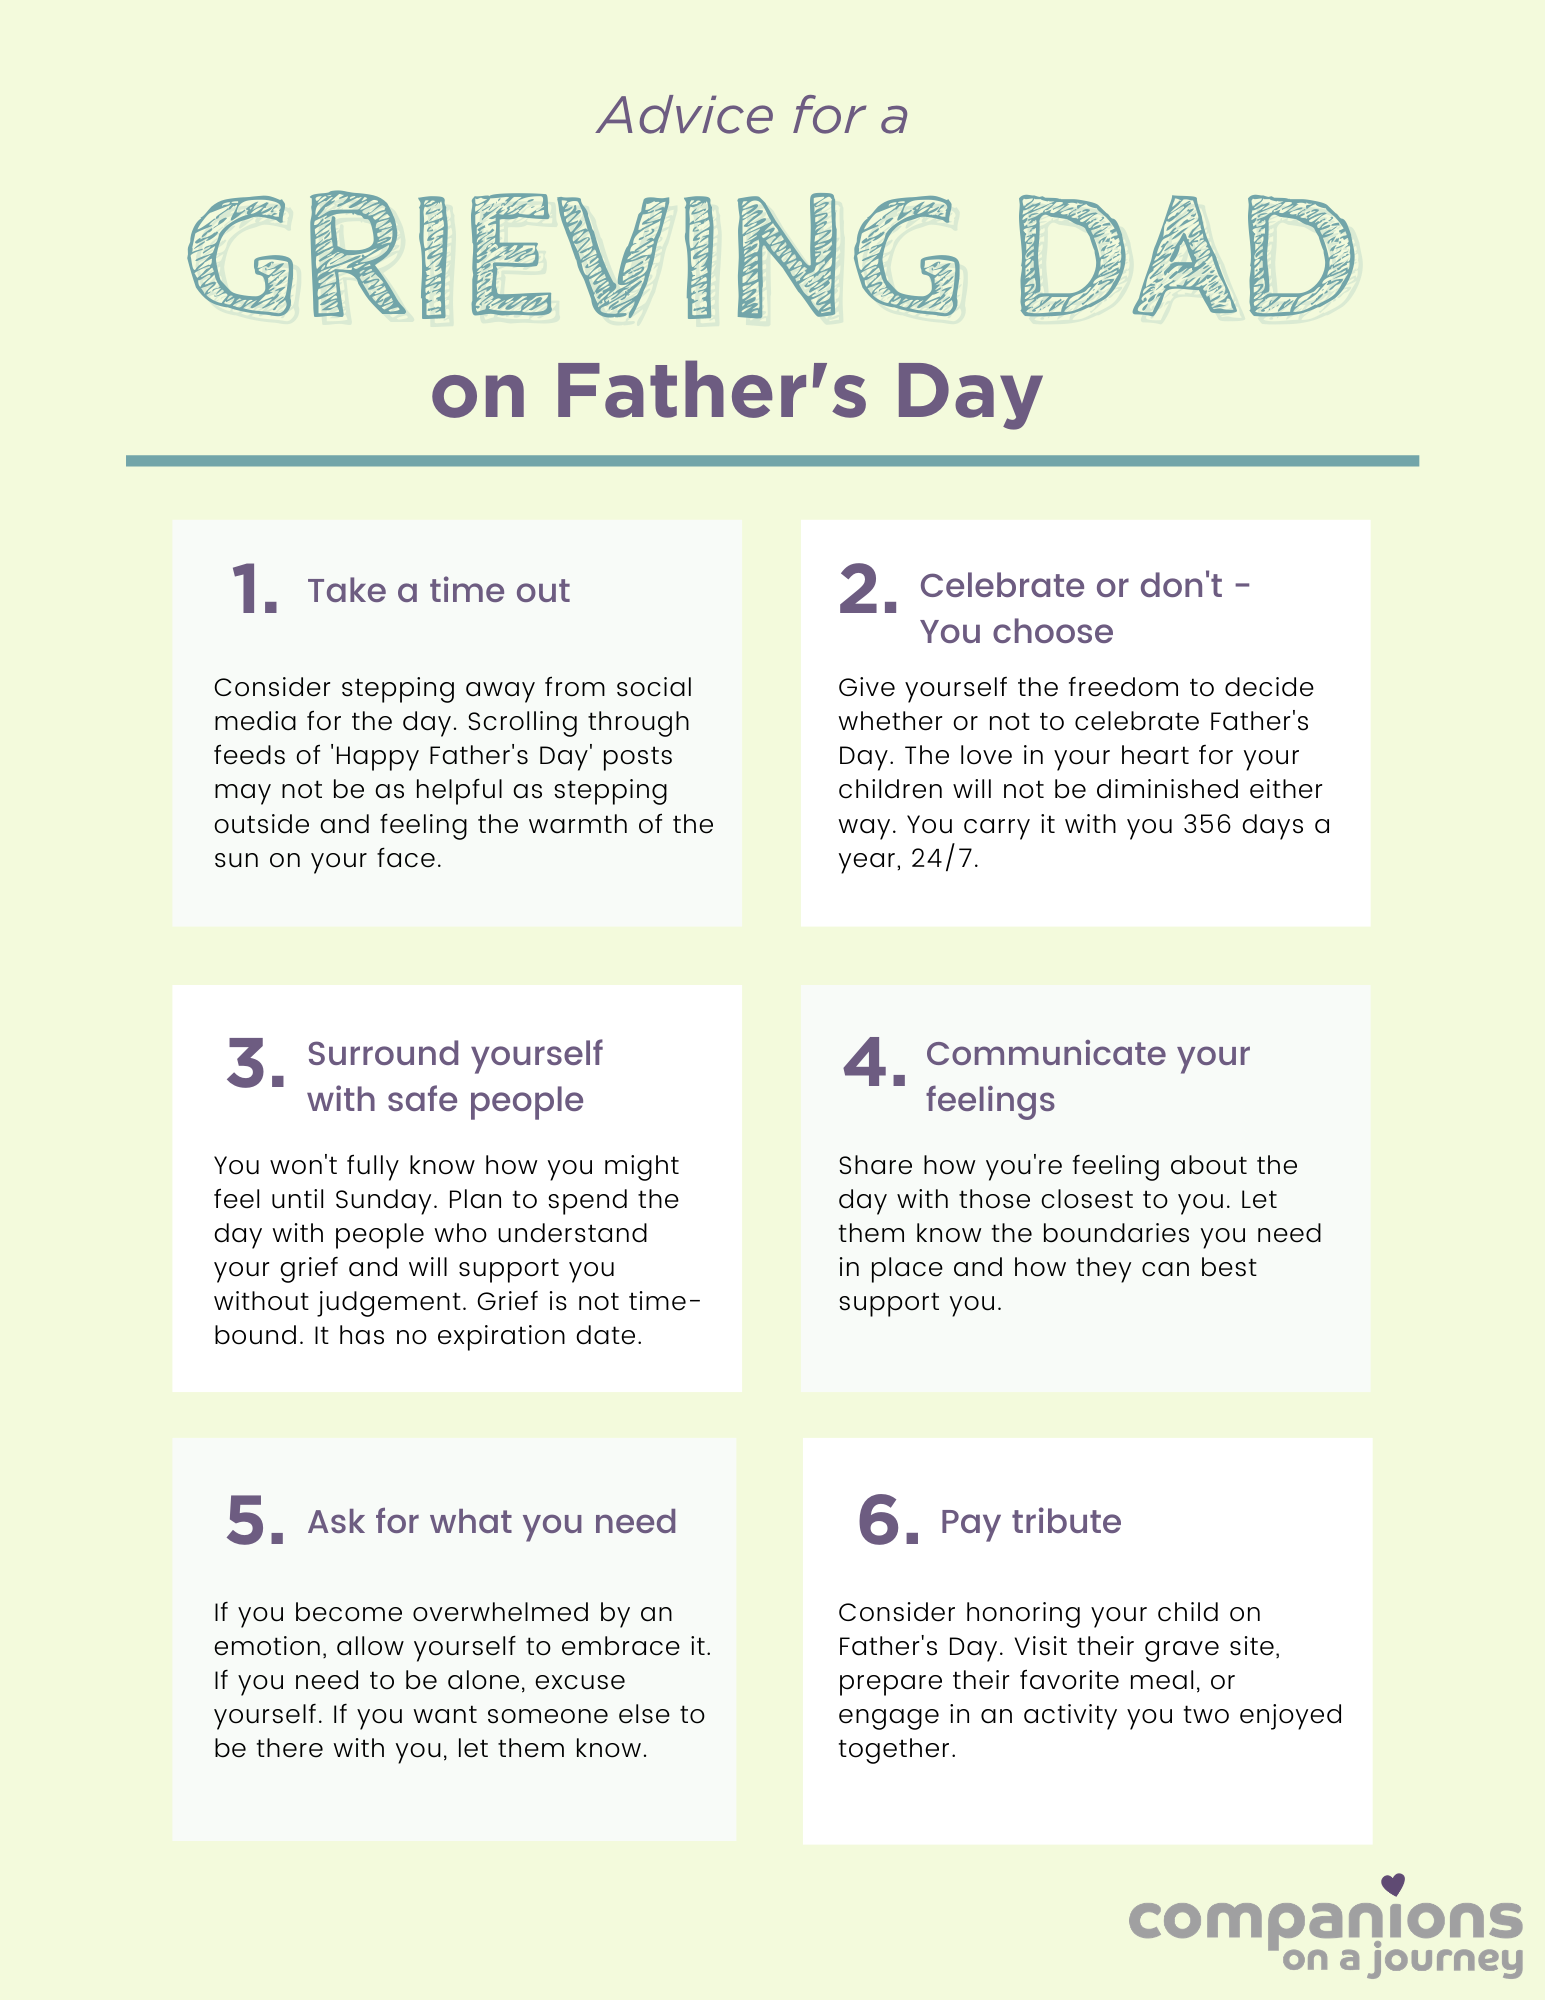 Bereaved Parents Advice for a Grieving Dad on Father's Day